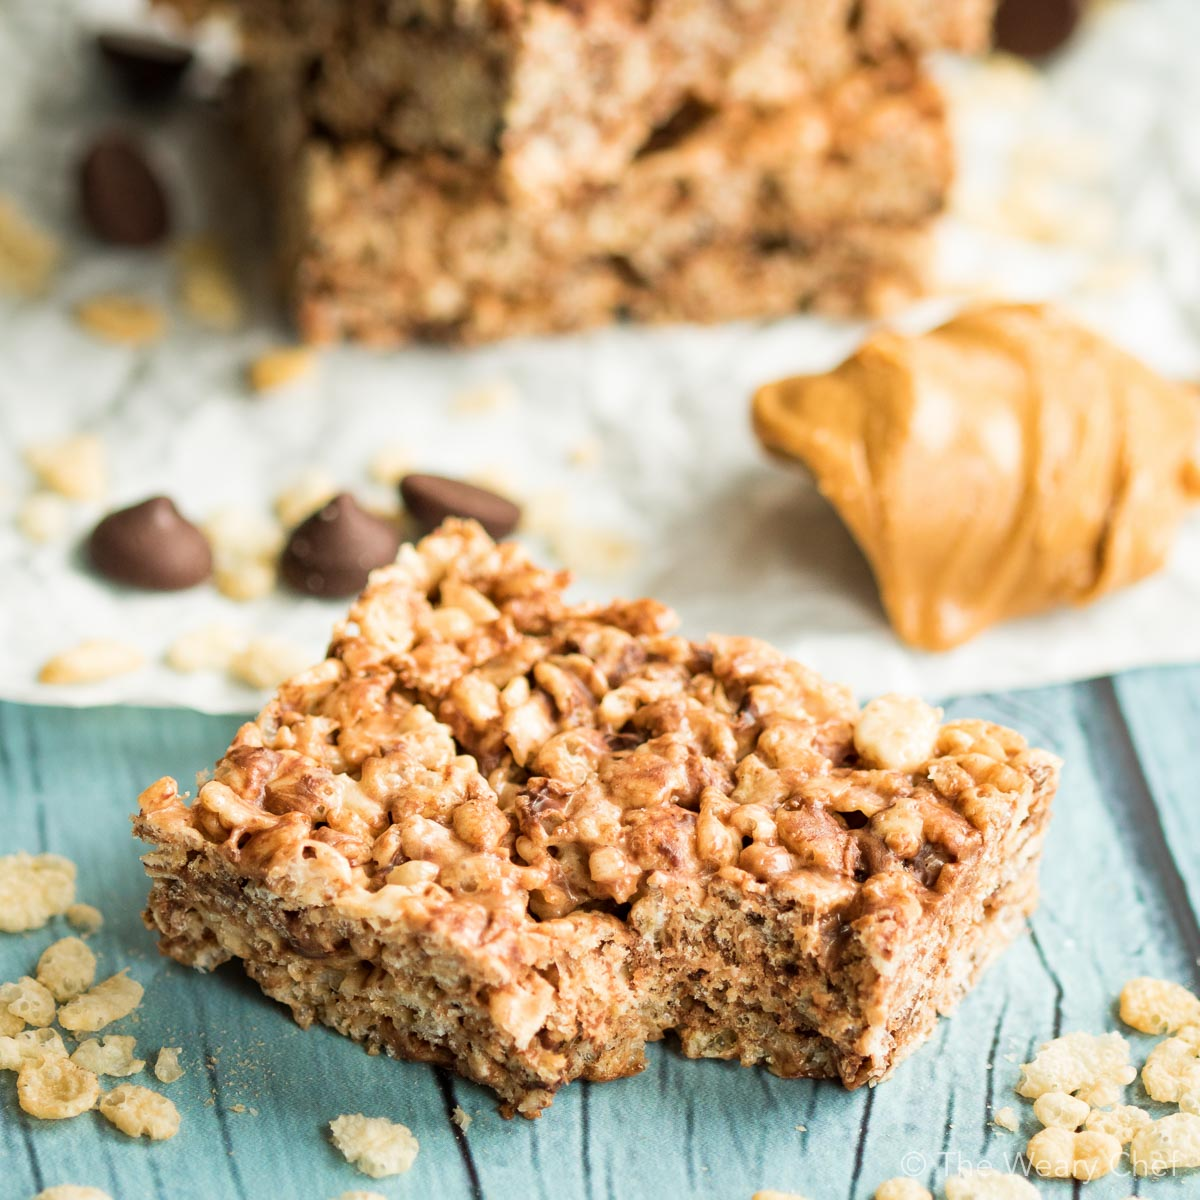 Chocolate Peanut Butter Rice Krispie Treats - The Weary Chef